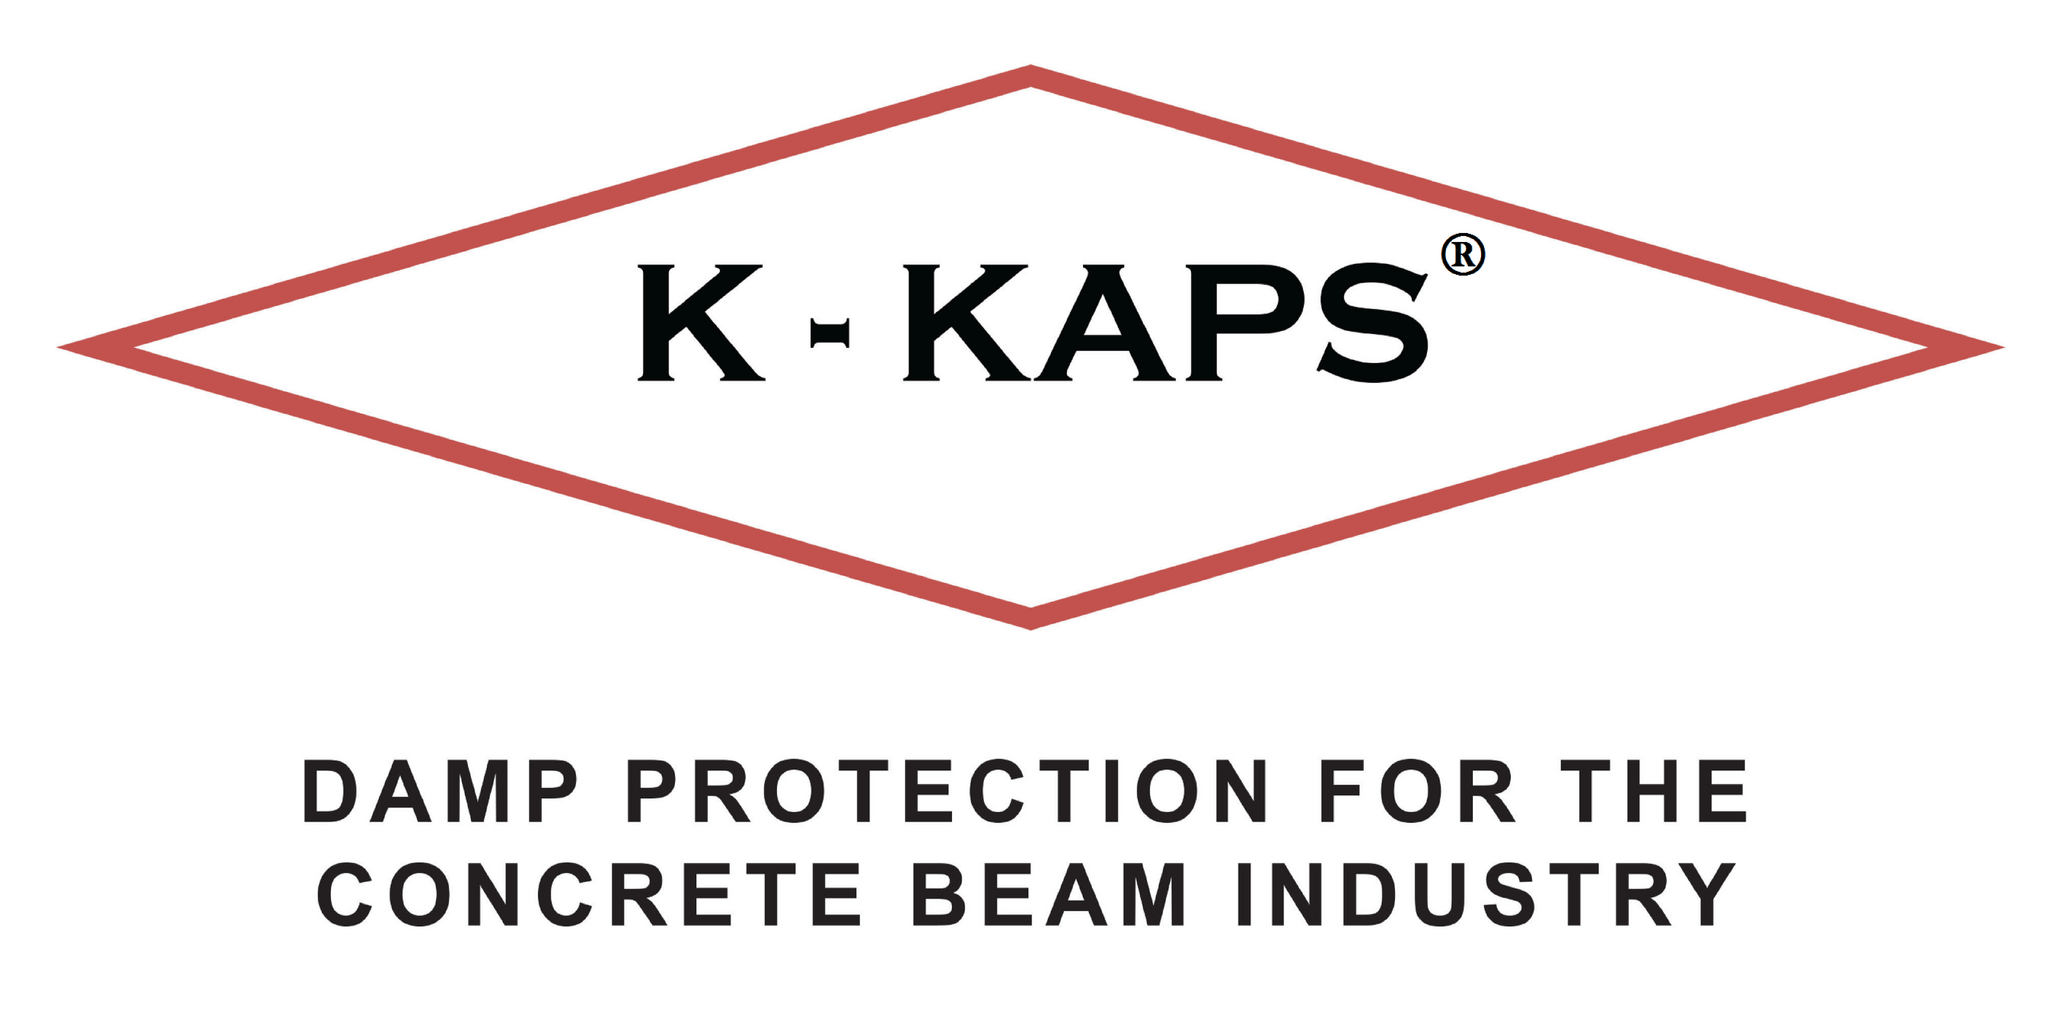 K-KAPS INTERNATIONAL LTD